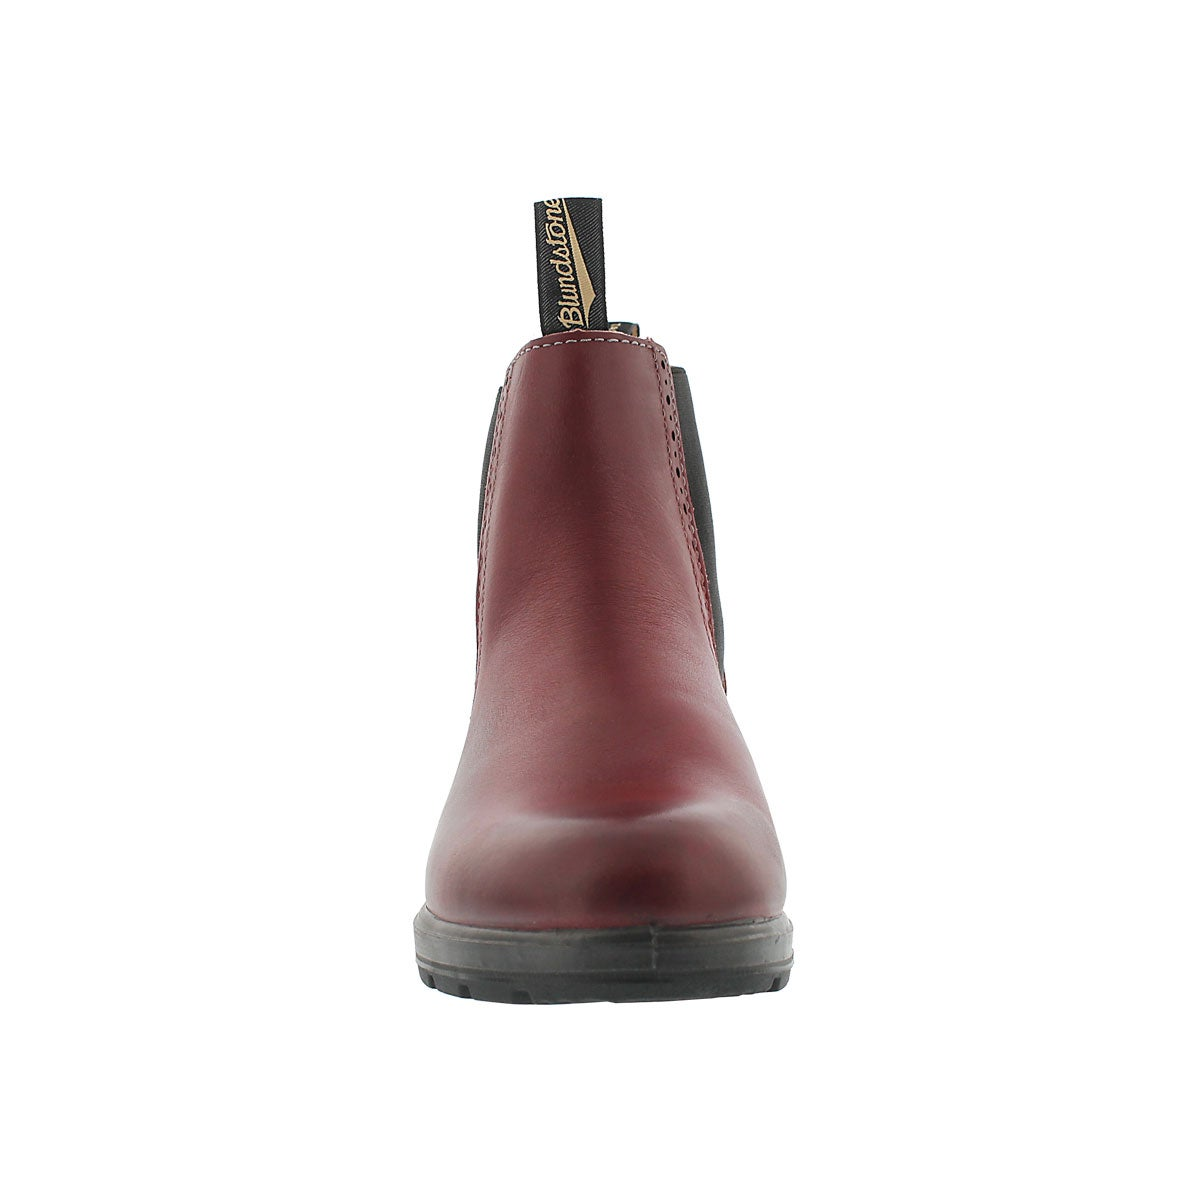 Lds Girlfriend burgundy pull on boot